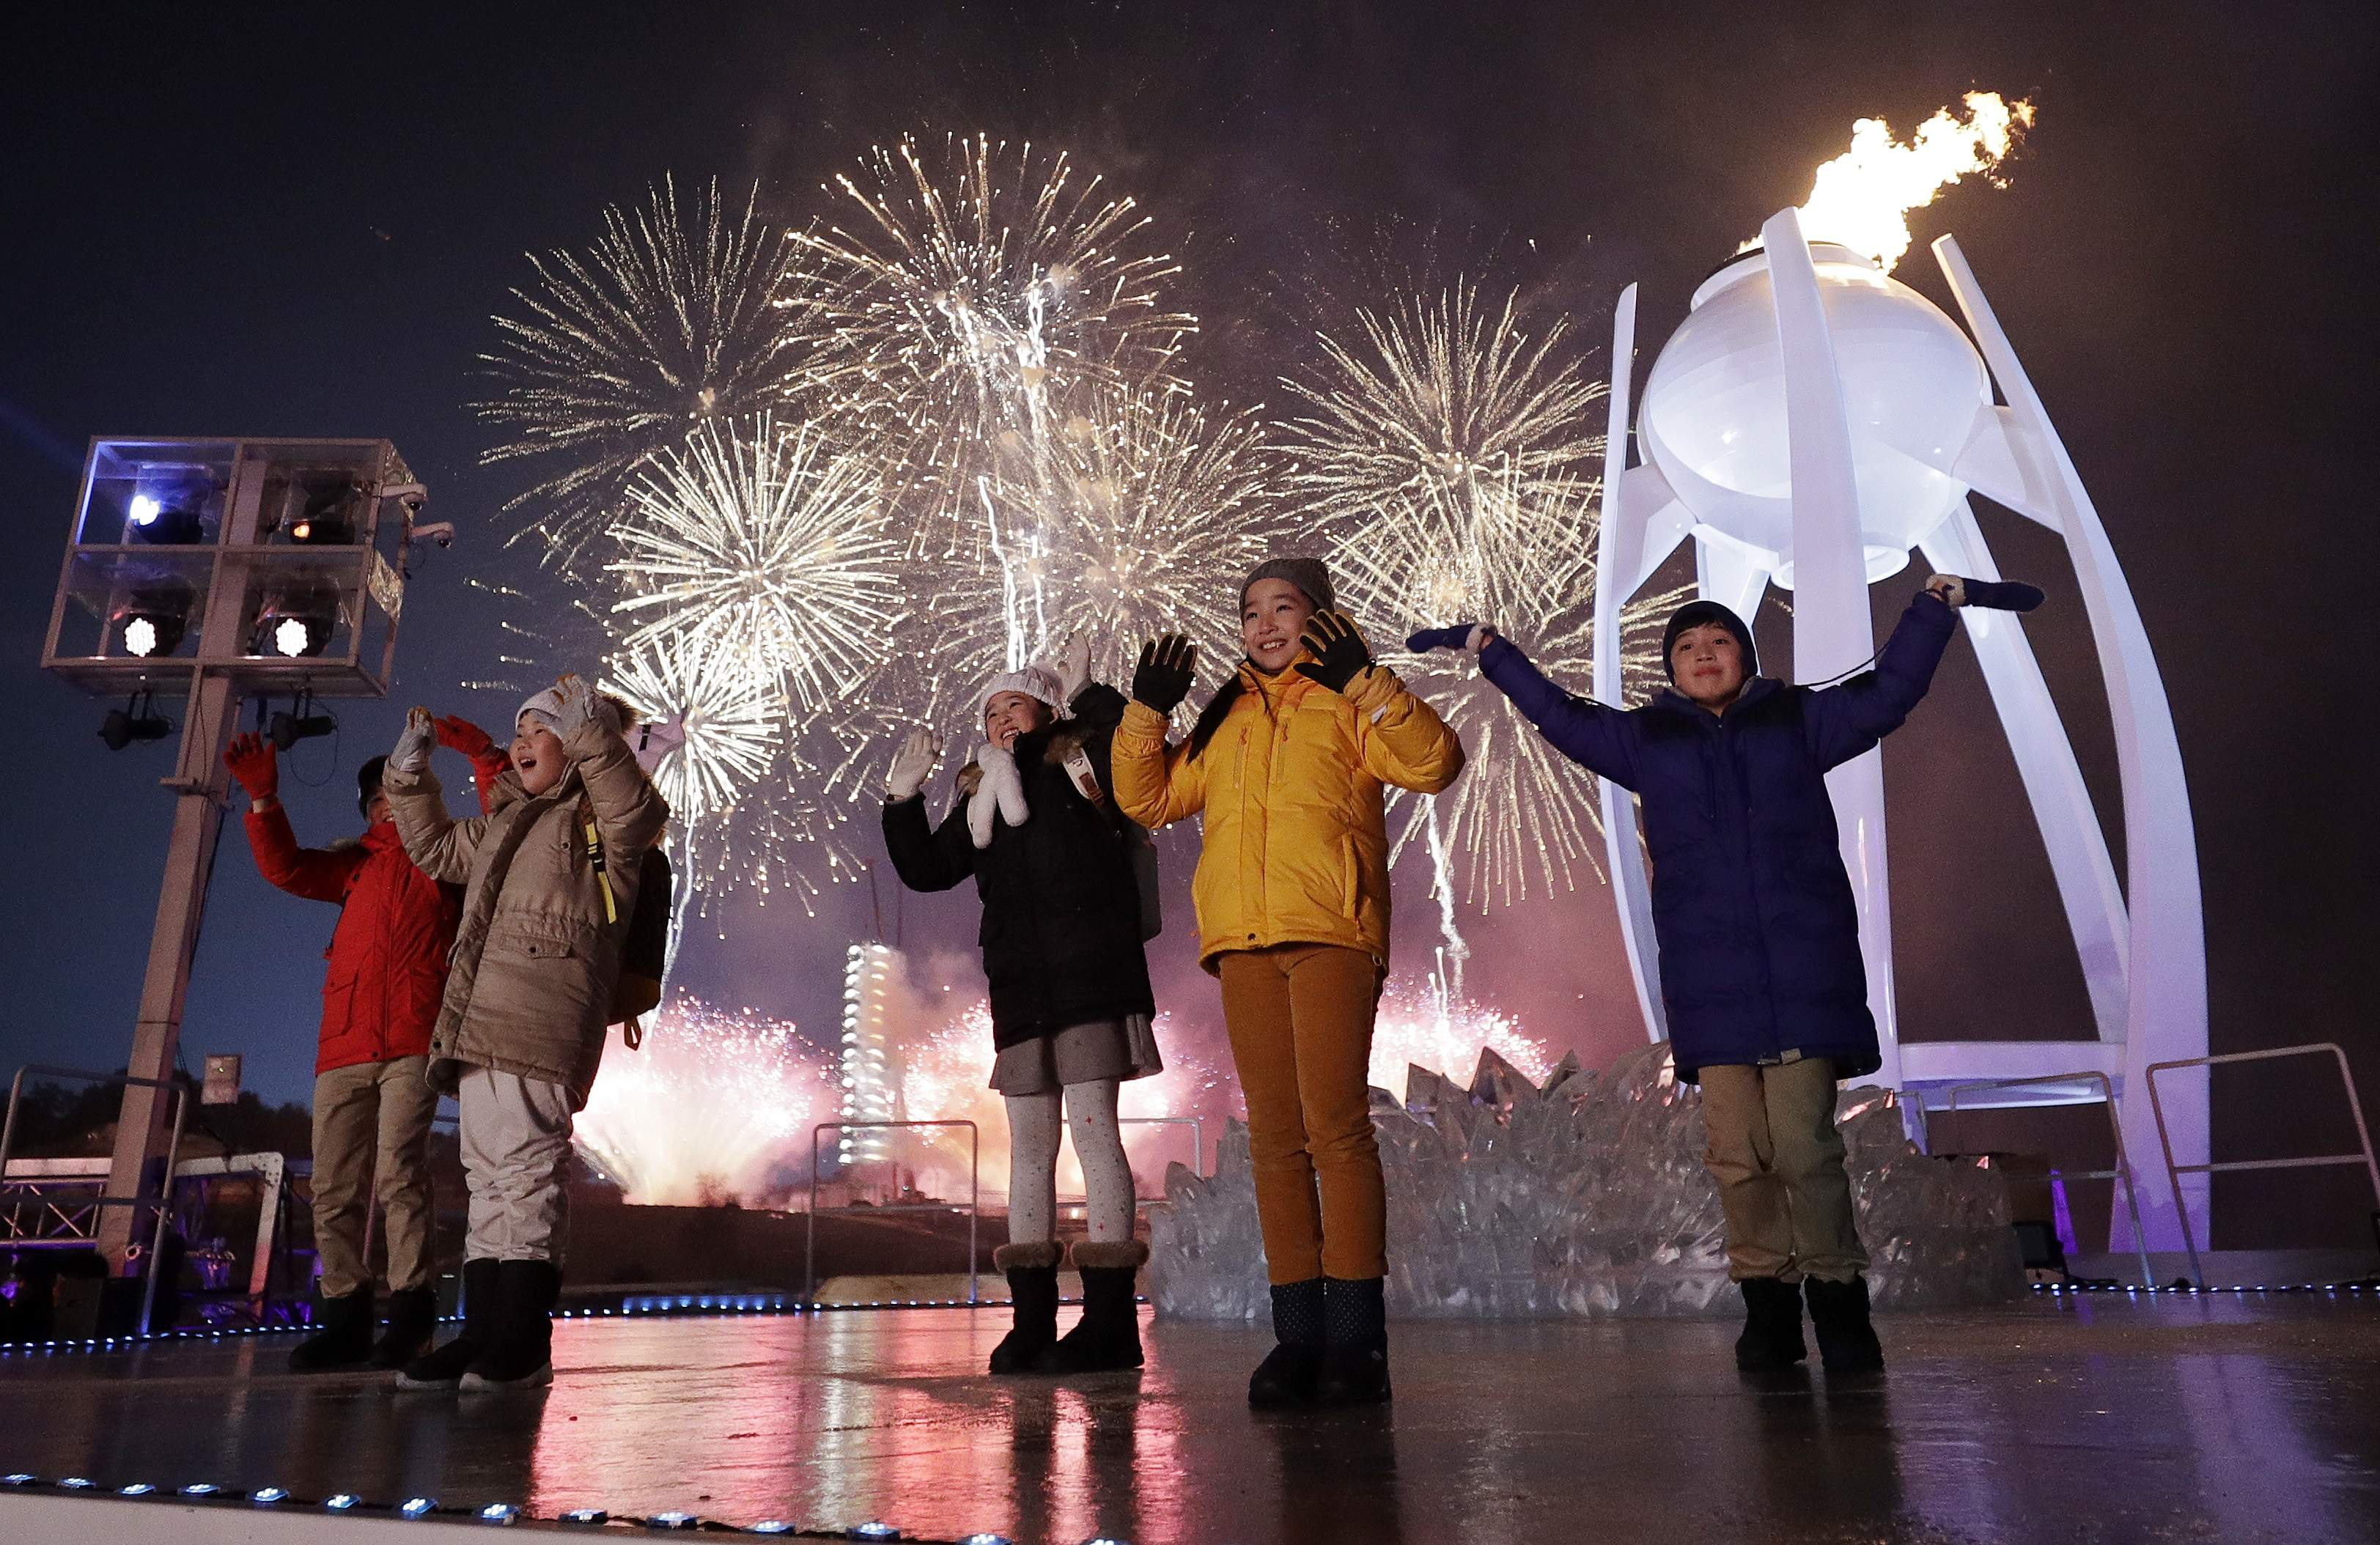 Performers dance as fireworks explode over the opening ceremony of the 2018 Winter Olympics in Pyeongchang, South Korea, Friday, Feb. 9, 2018. (AP Photo/David J. Phillip,Pool)